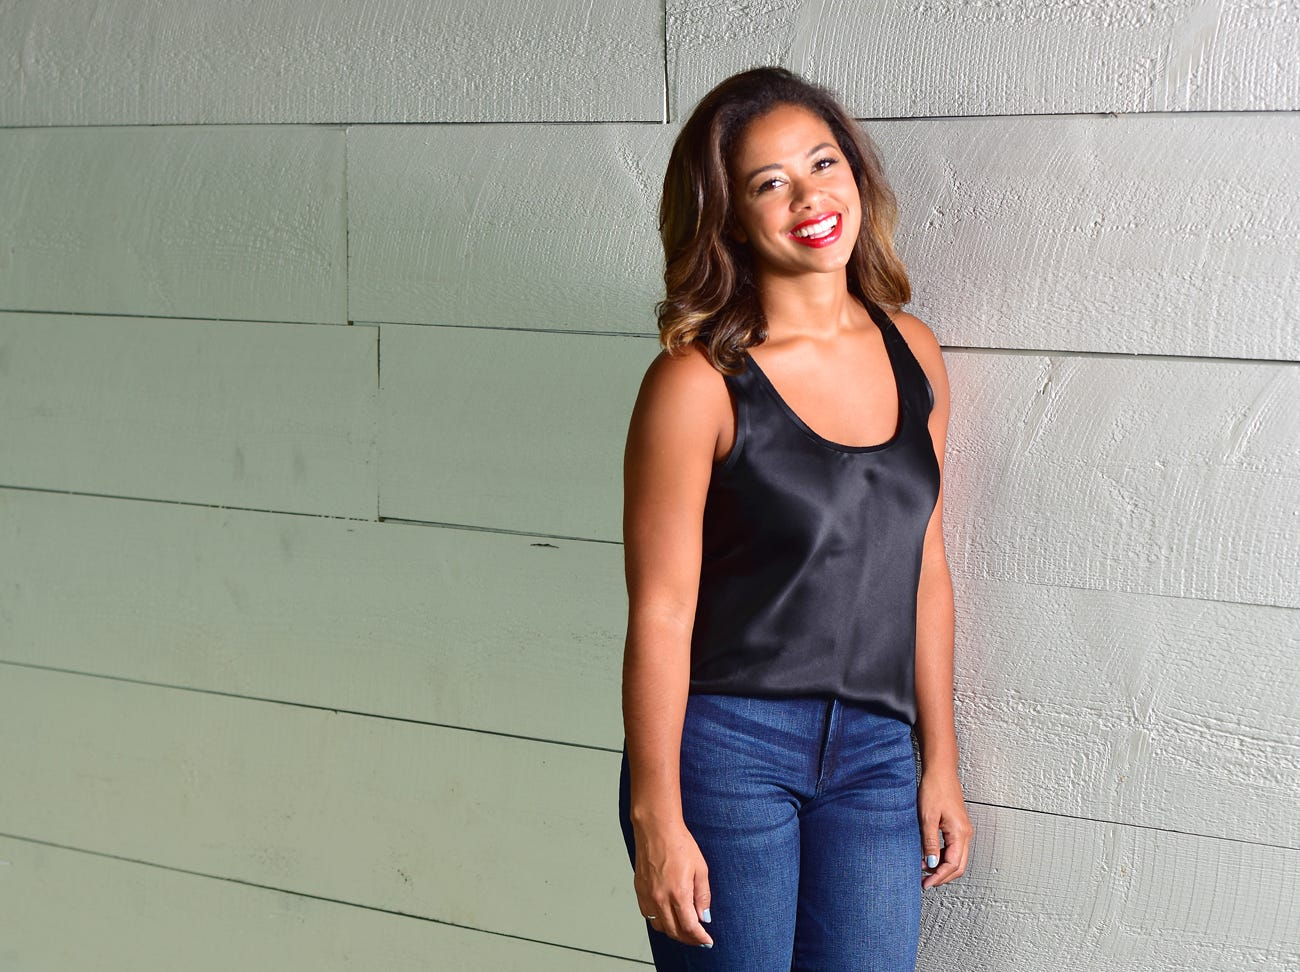 Natasha Bevans was name one of TALK  Greenville's 10 Most Fashionable.